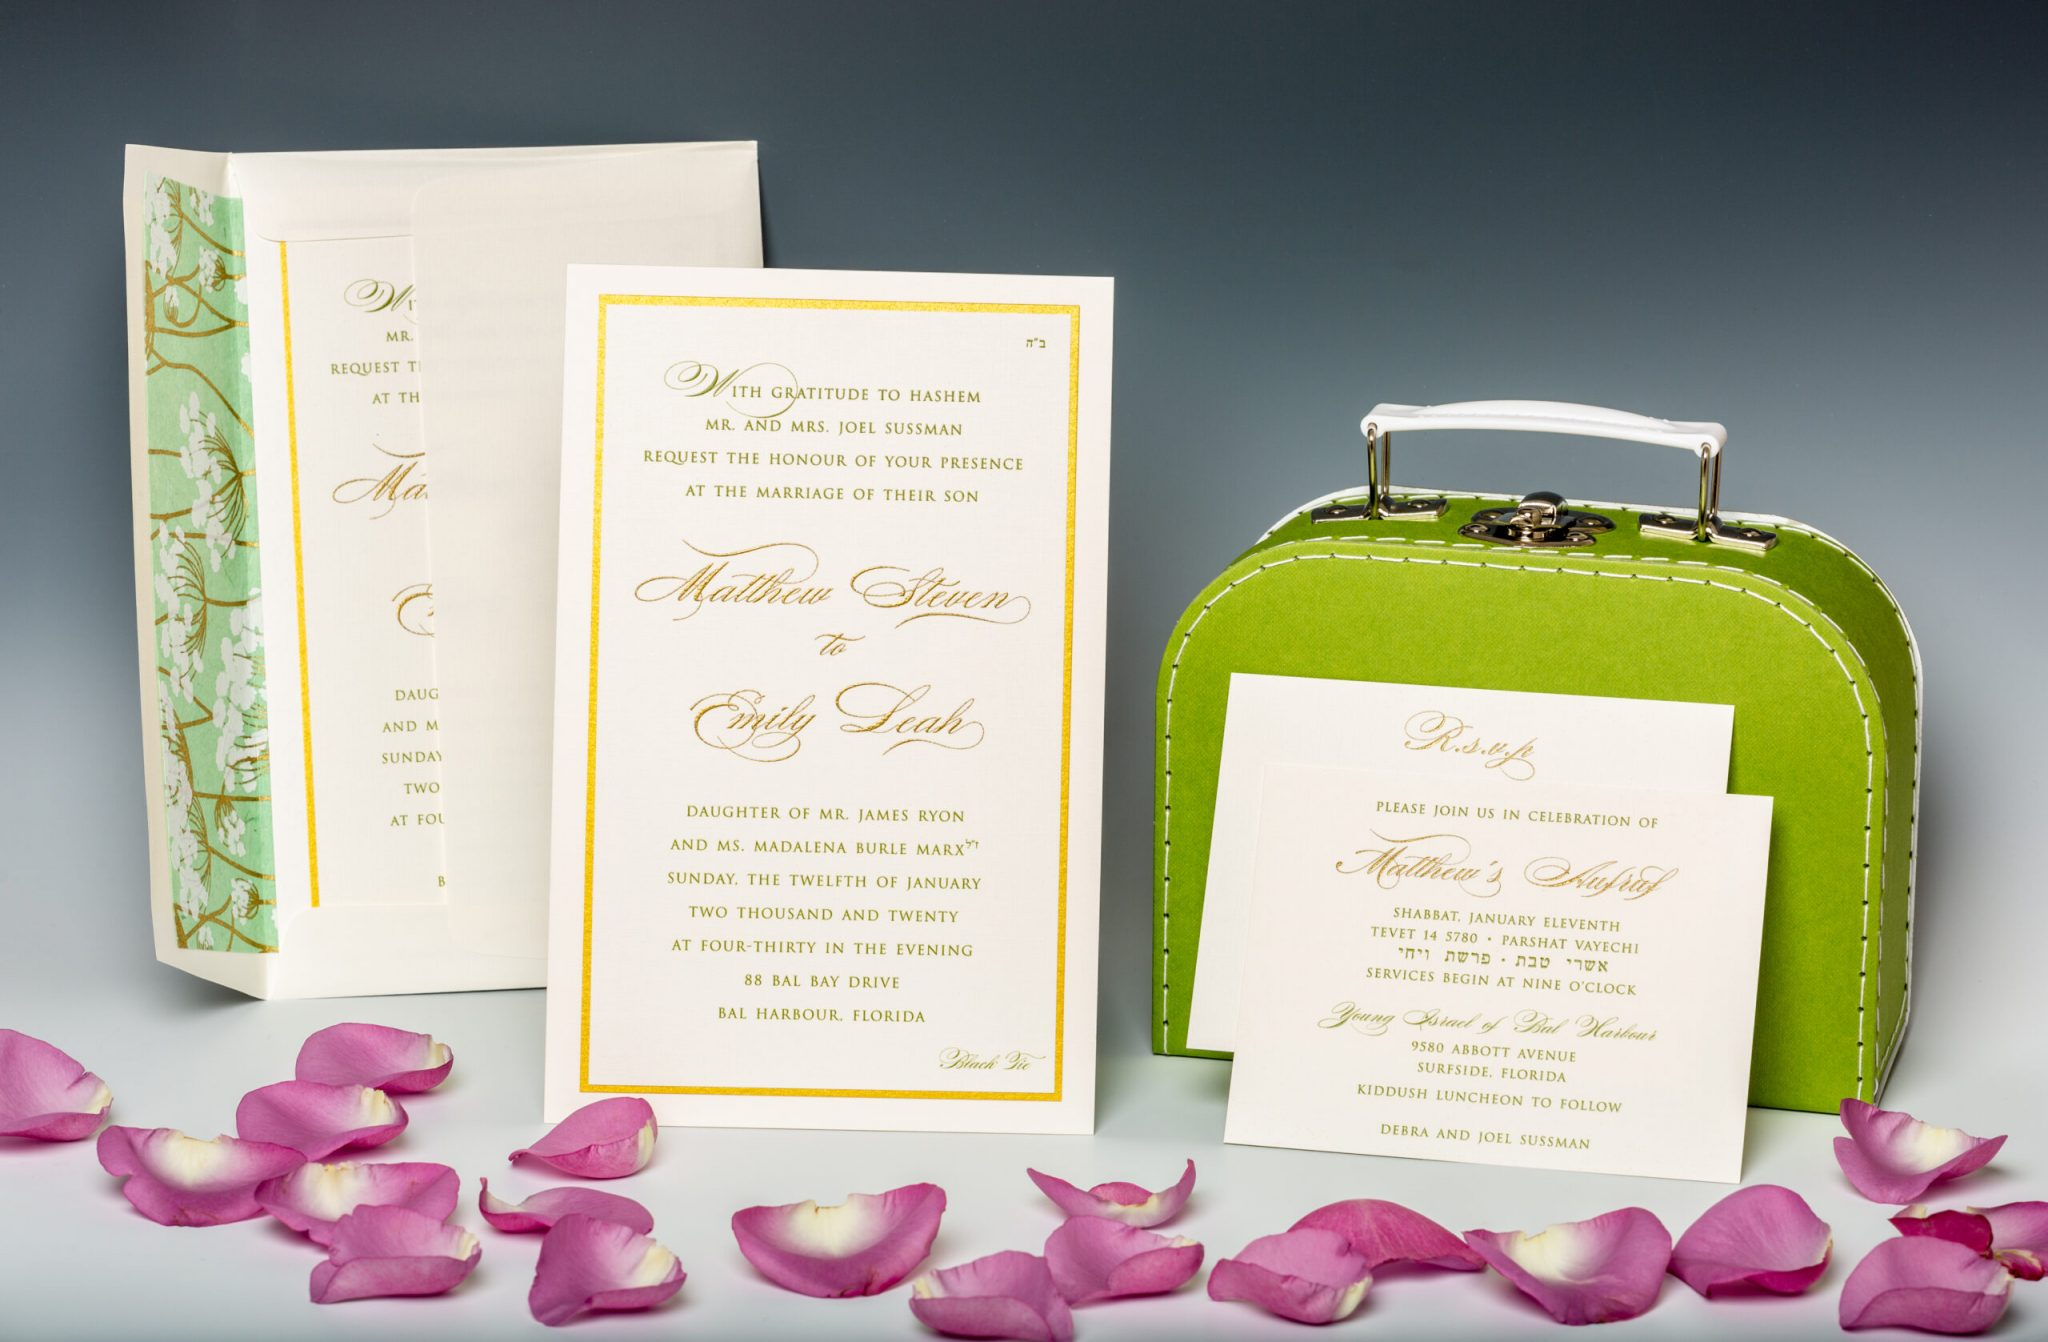 Houston Custom Invitations, Gifts, and Favors